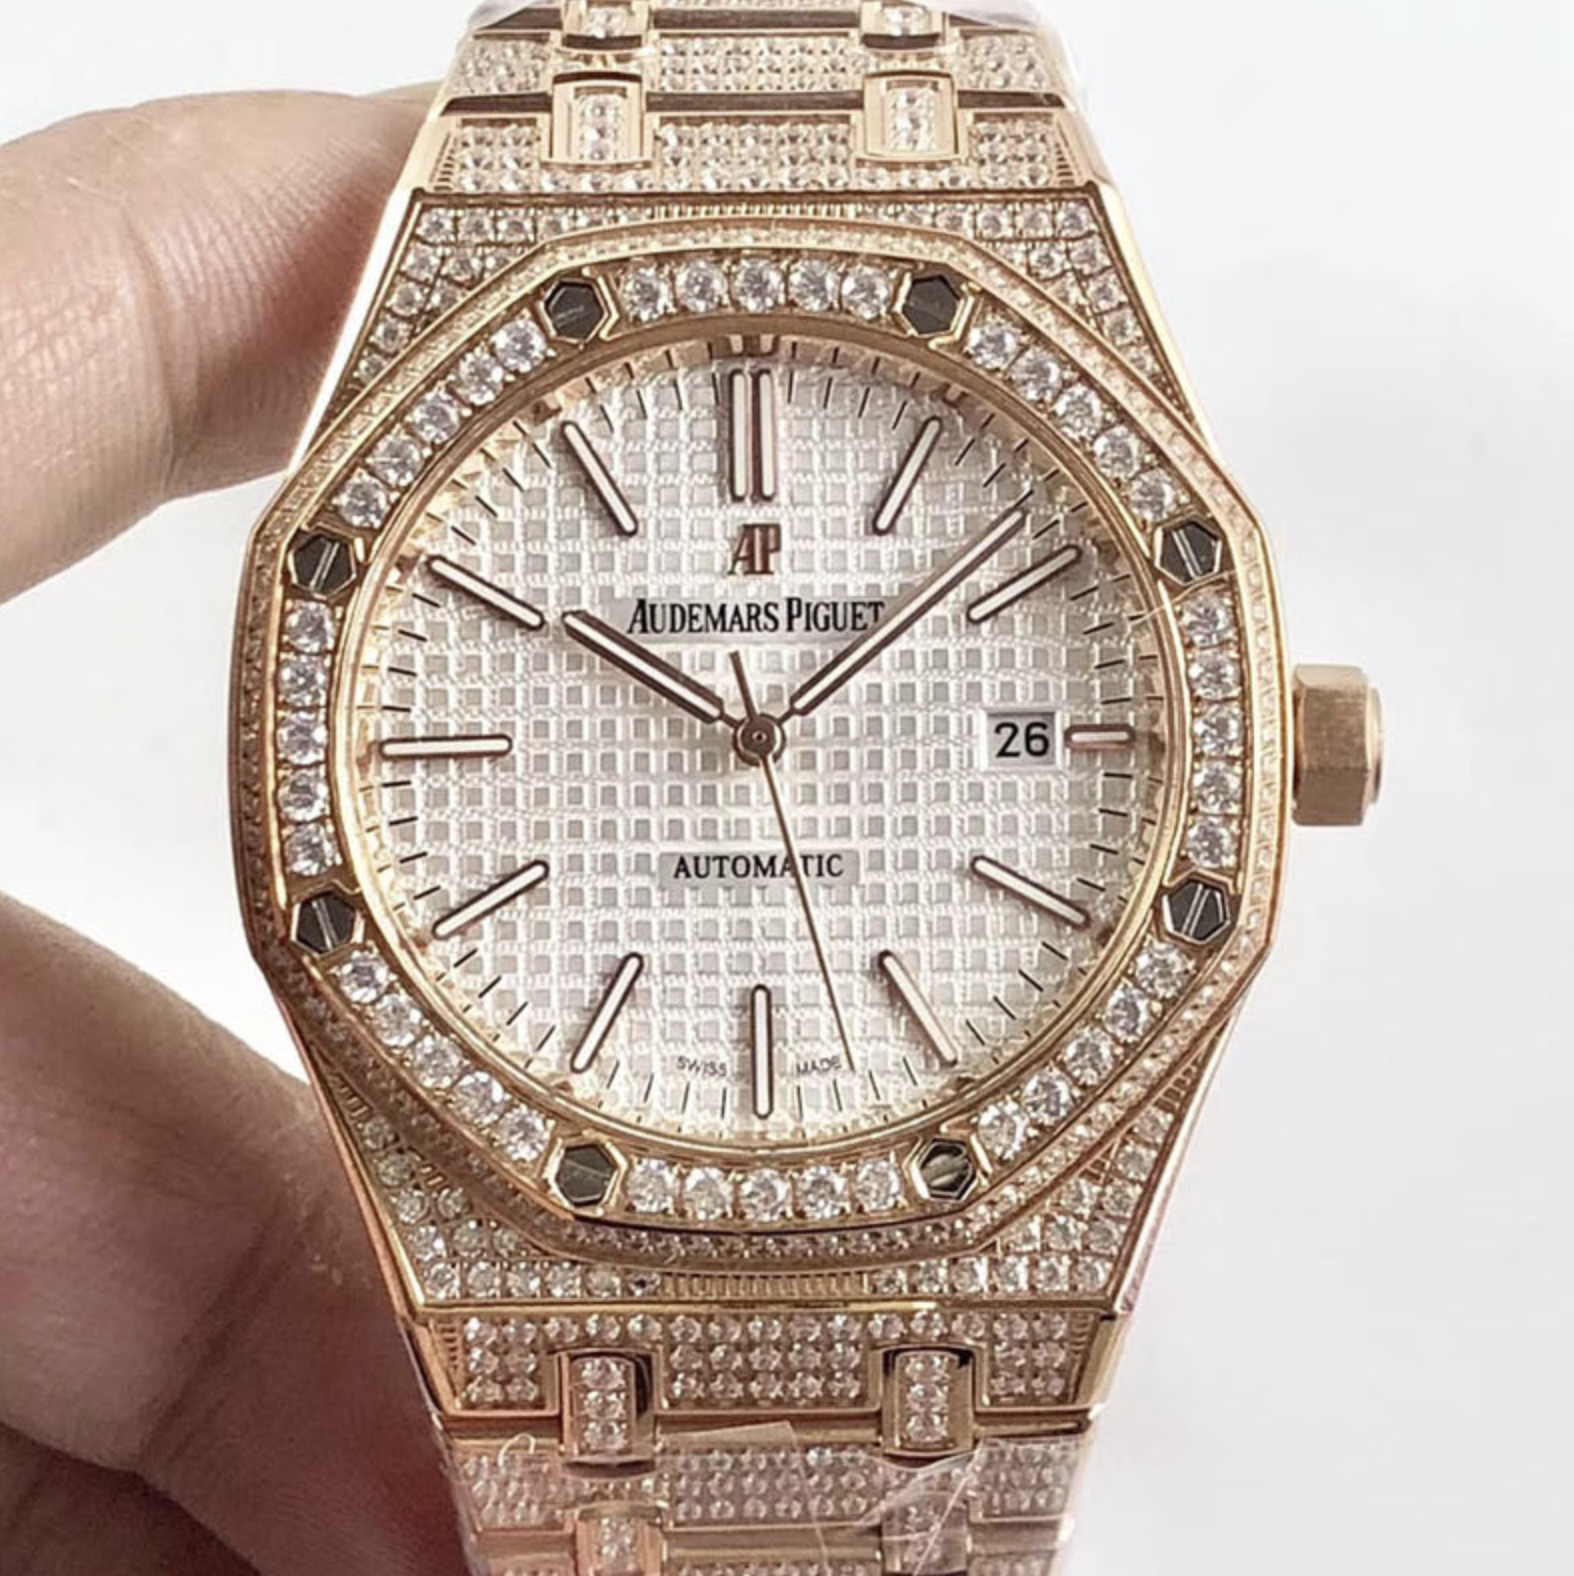 Audemars piguet replica royal oak 15400ST 41mm rose gold full paved diamonds white dial